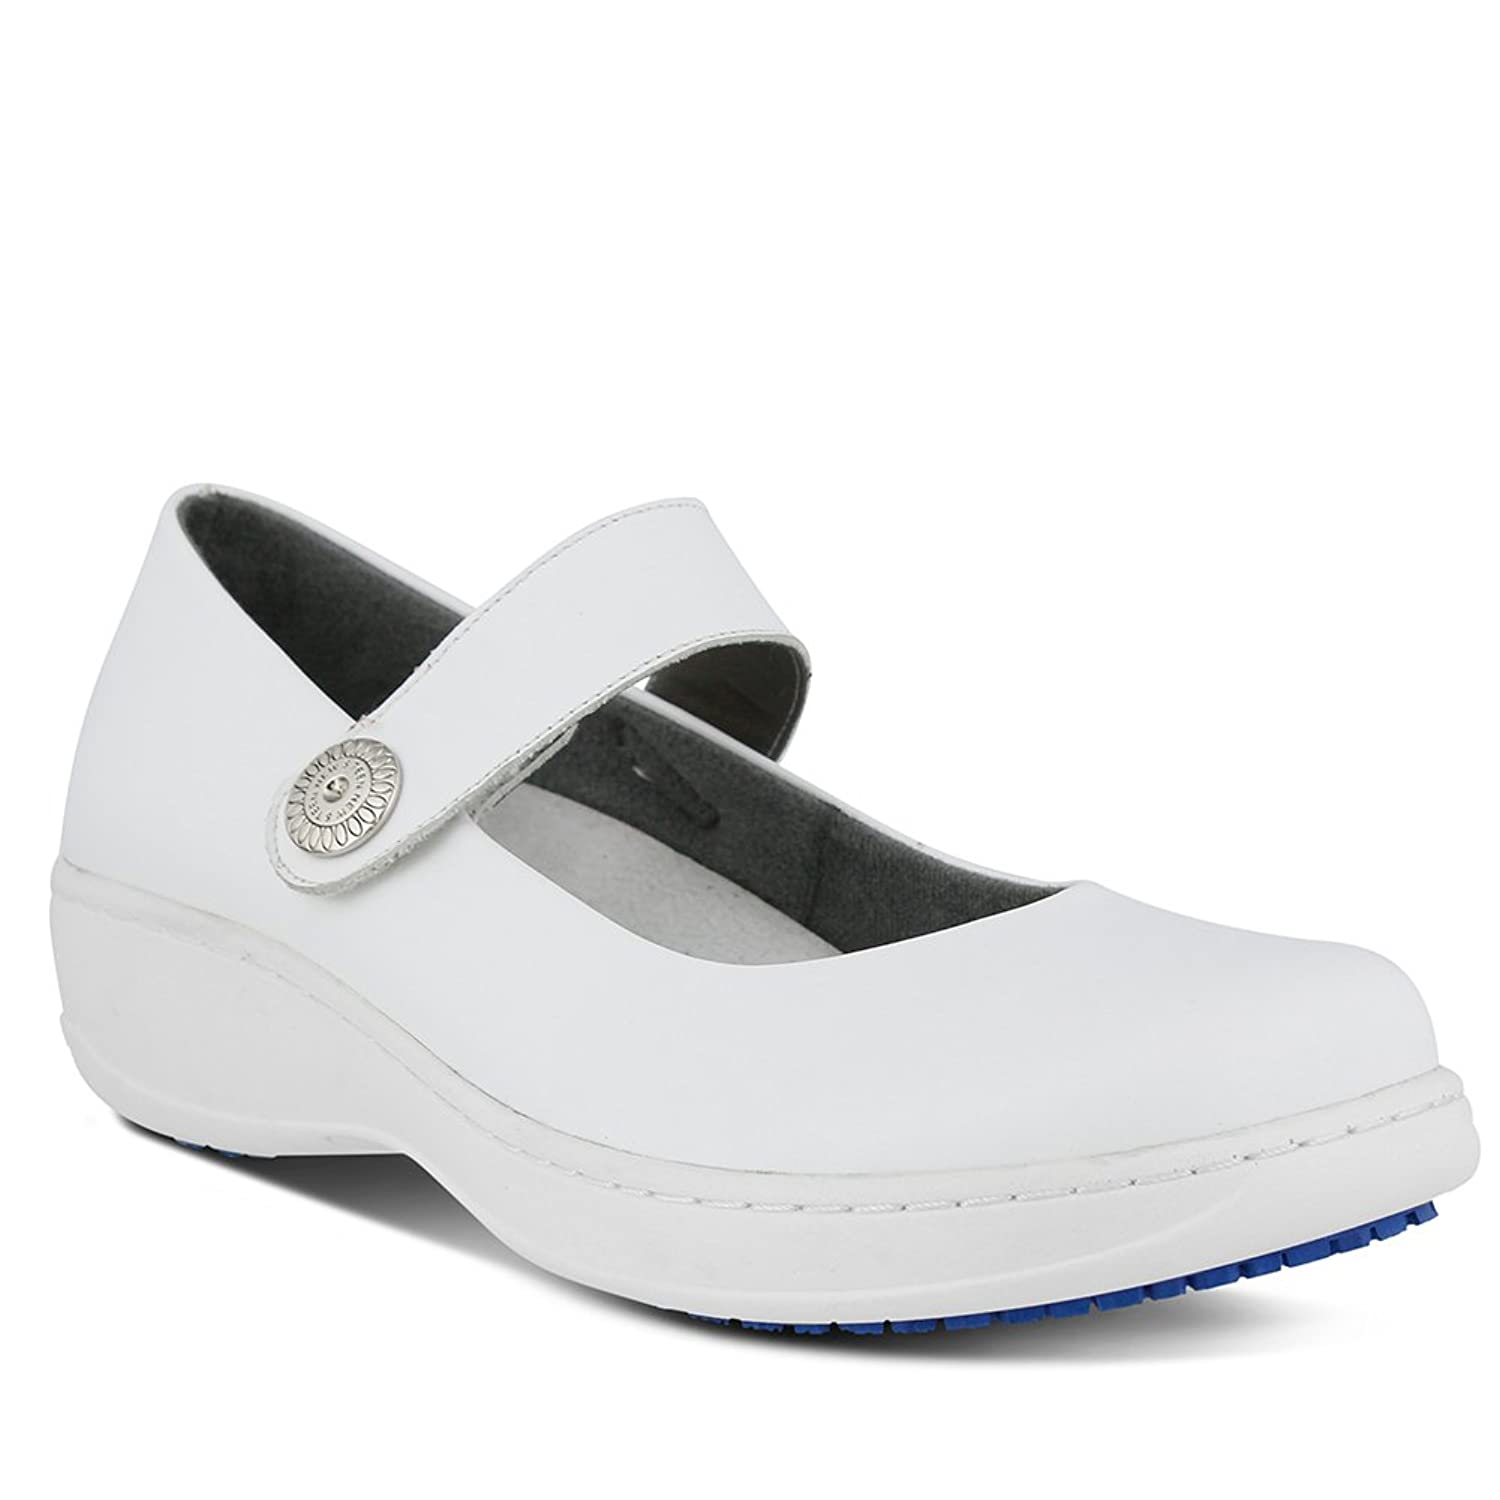 Spring Step Professional Womens Wisteria Vibe Shoe, WHITE, Size - 9.5